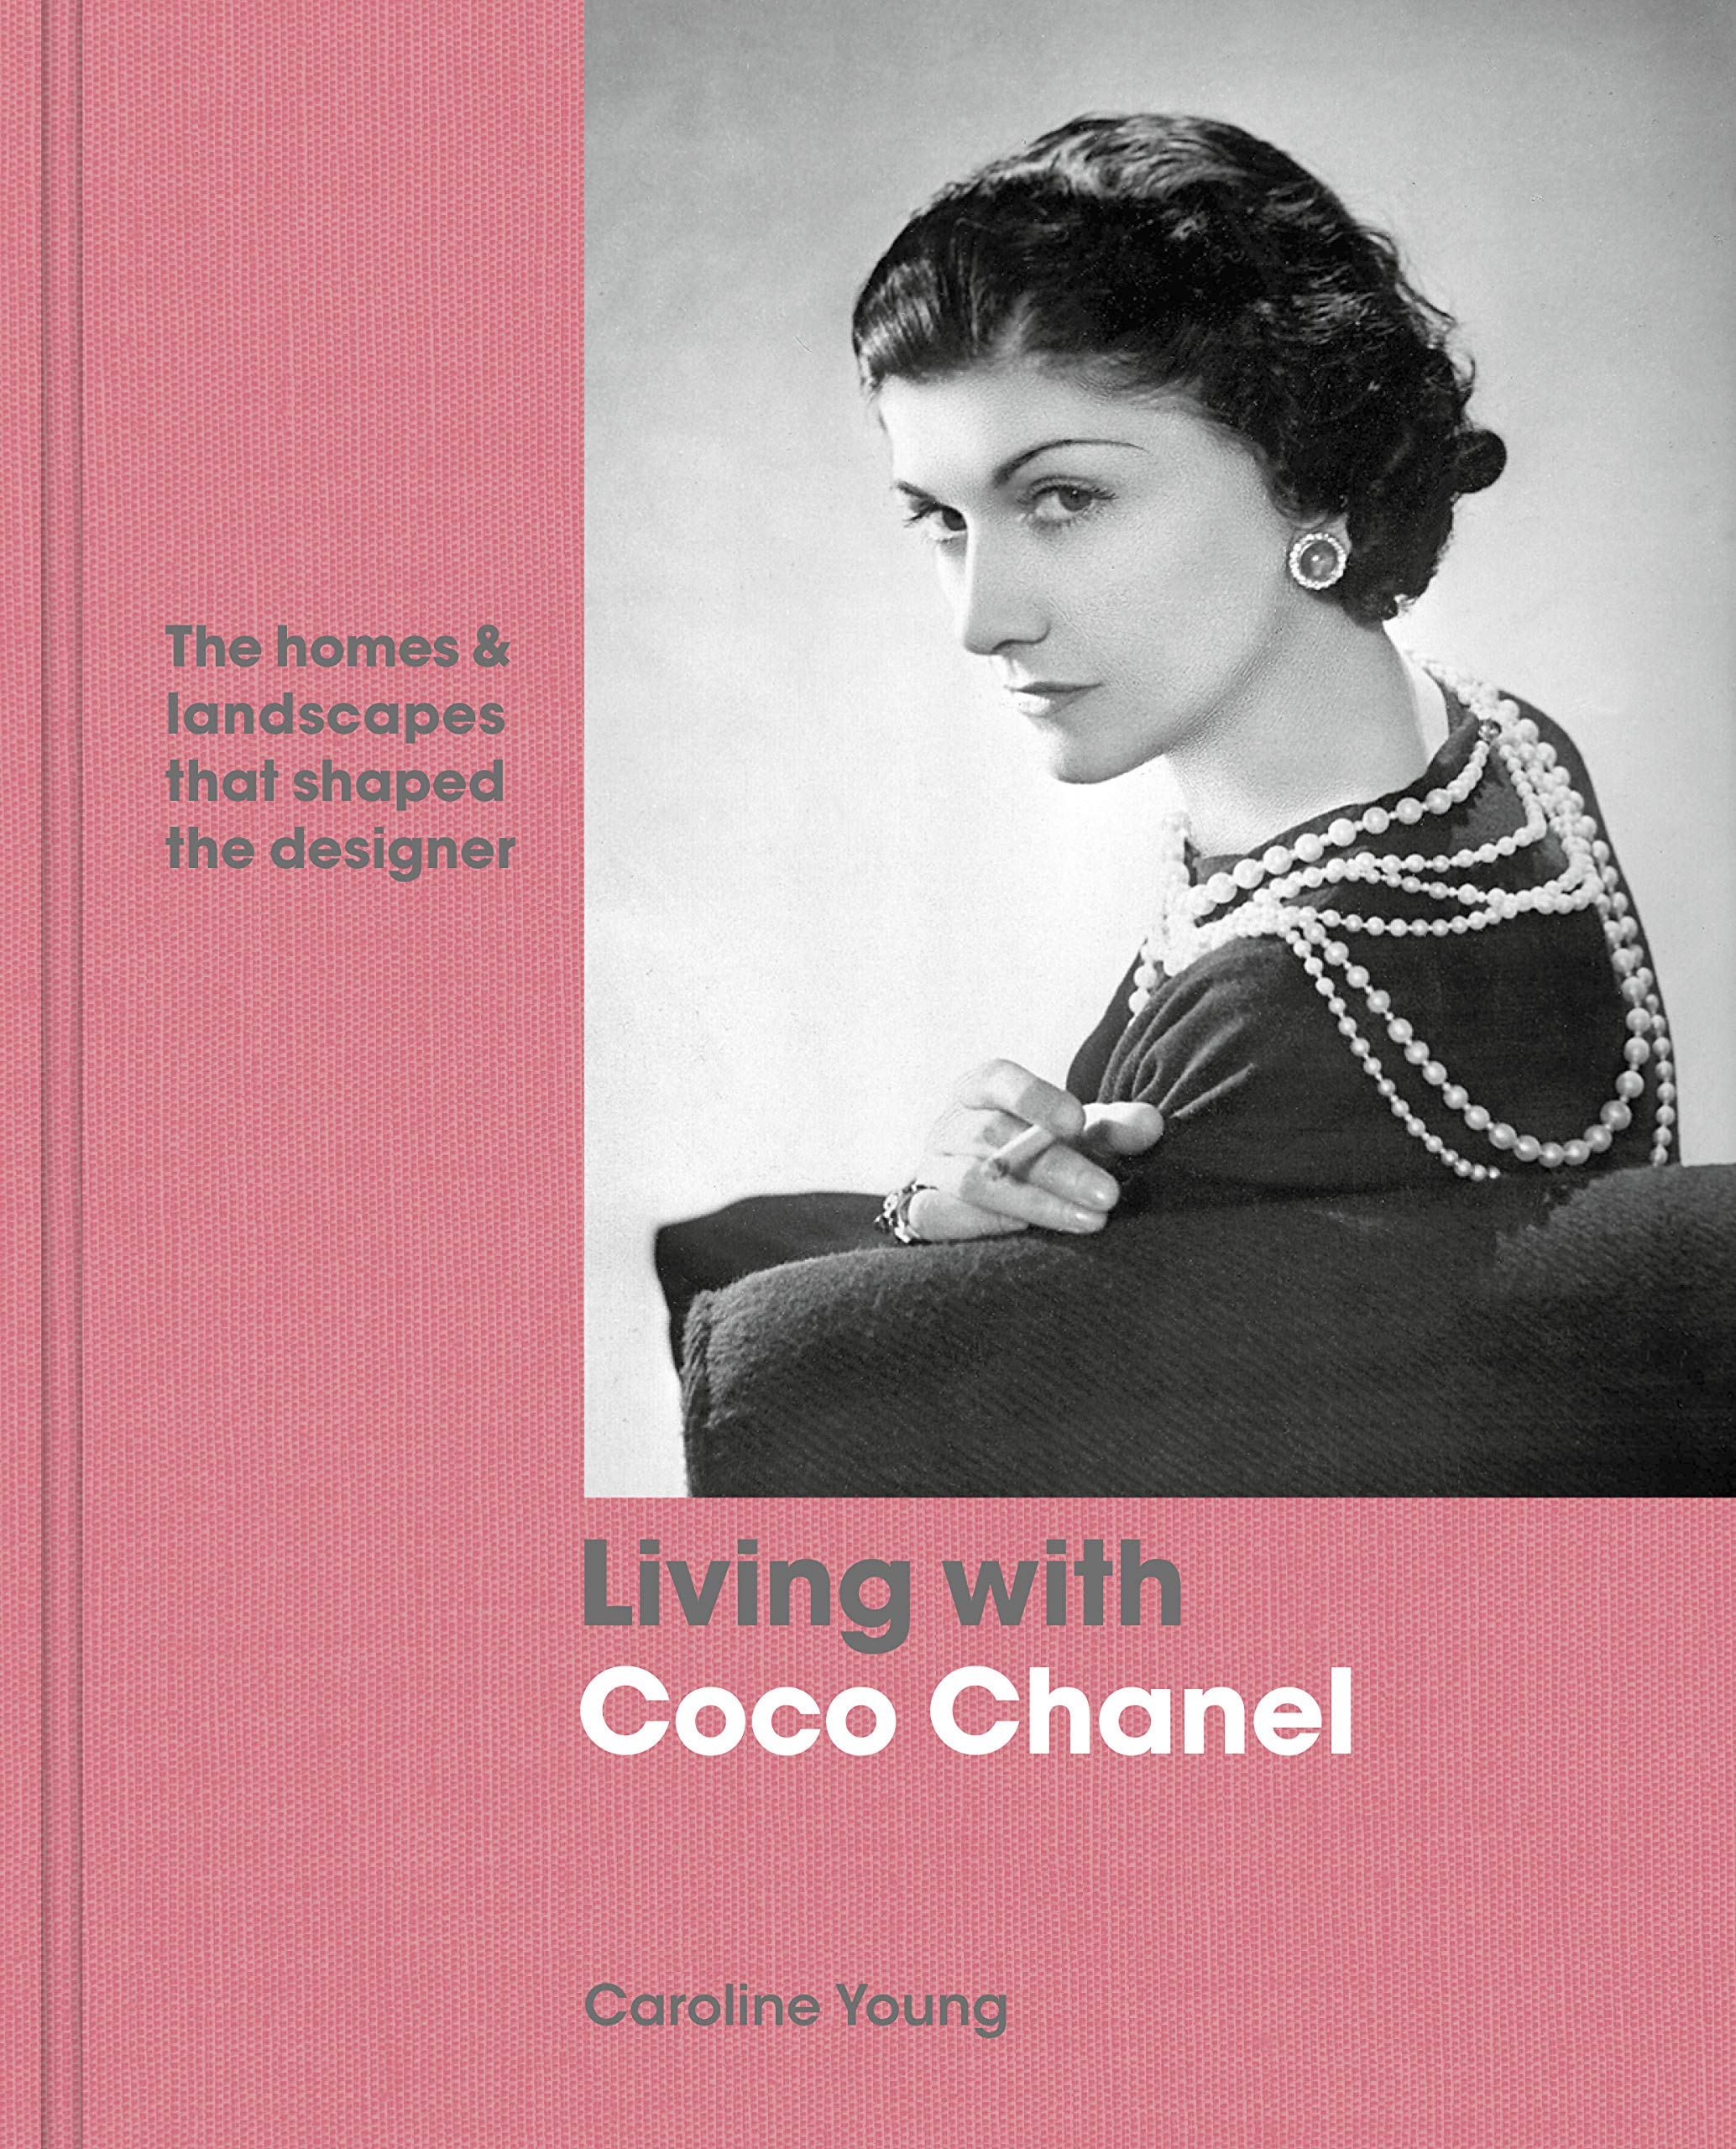 Living With Coco Chanel The Homes And Landscapes That Shaped The Designer Young Caroline 9780711240346 Amazon Com Books